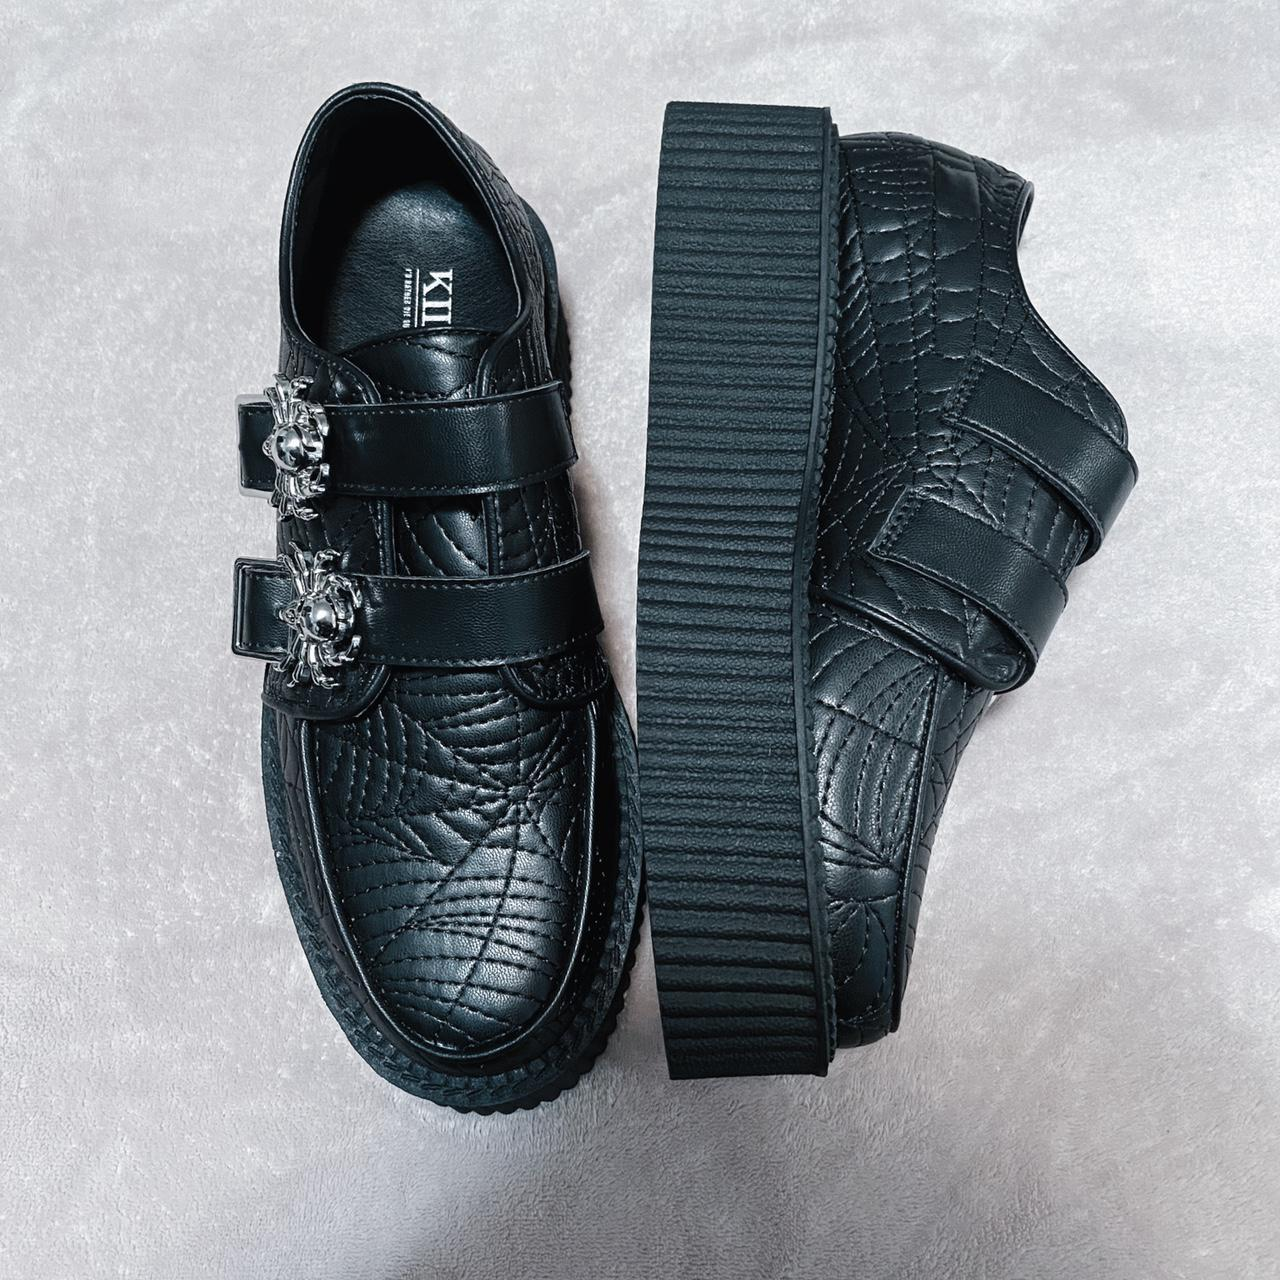 Product Image 1 - Killstar creepers with spiderweb stitching